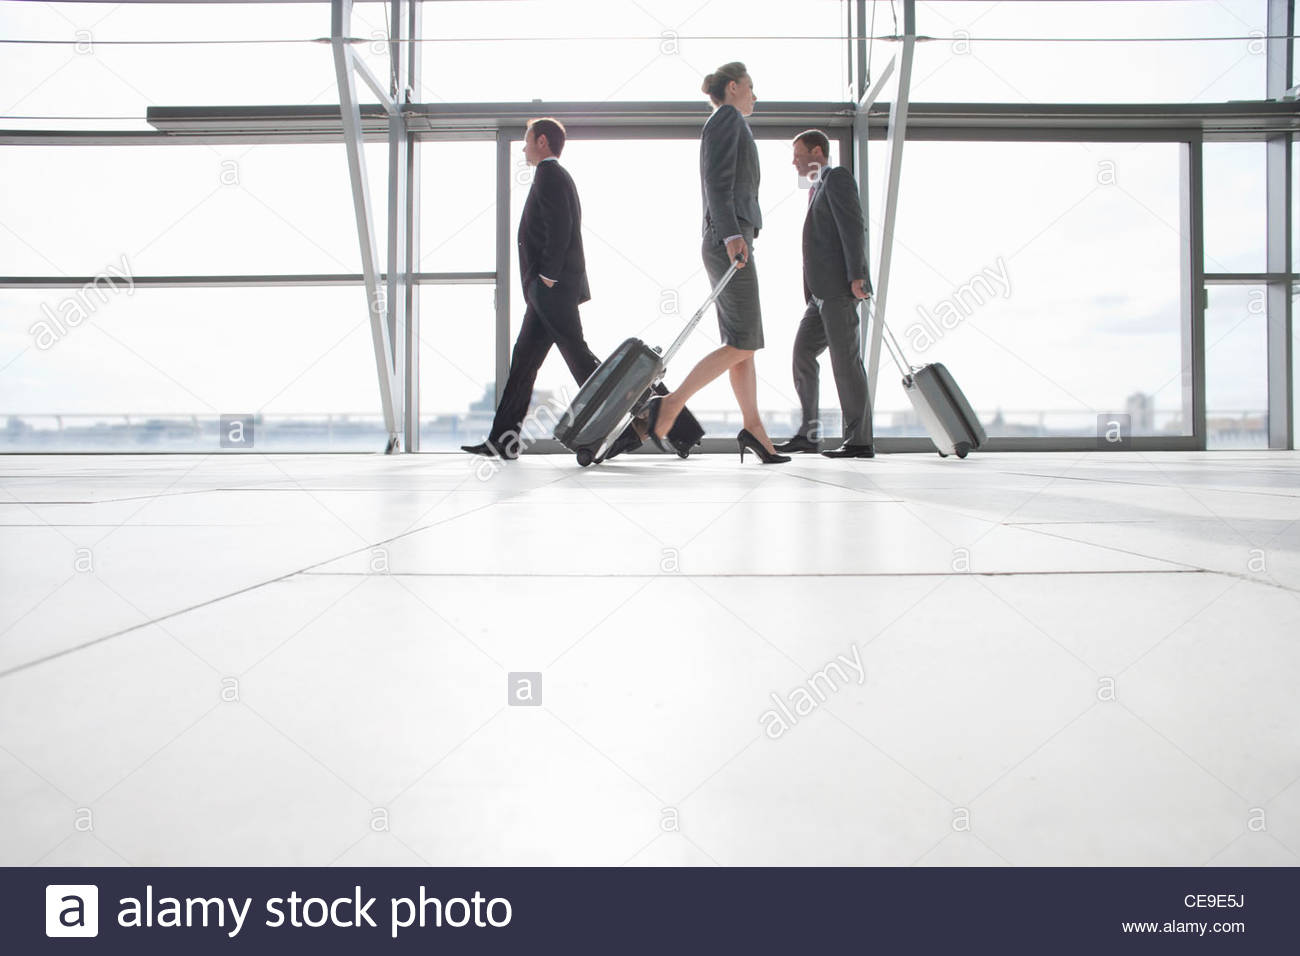 Business people pulling suitcases in airport - Stock Image